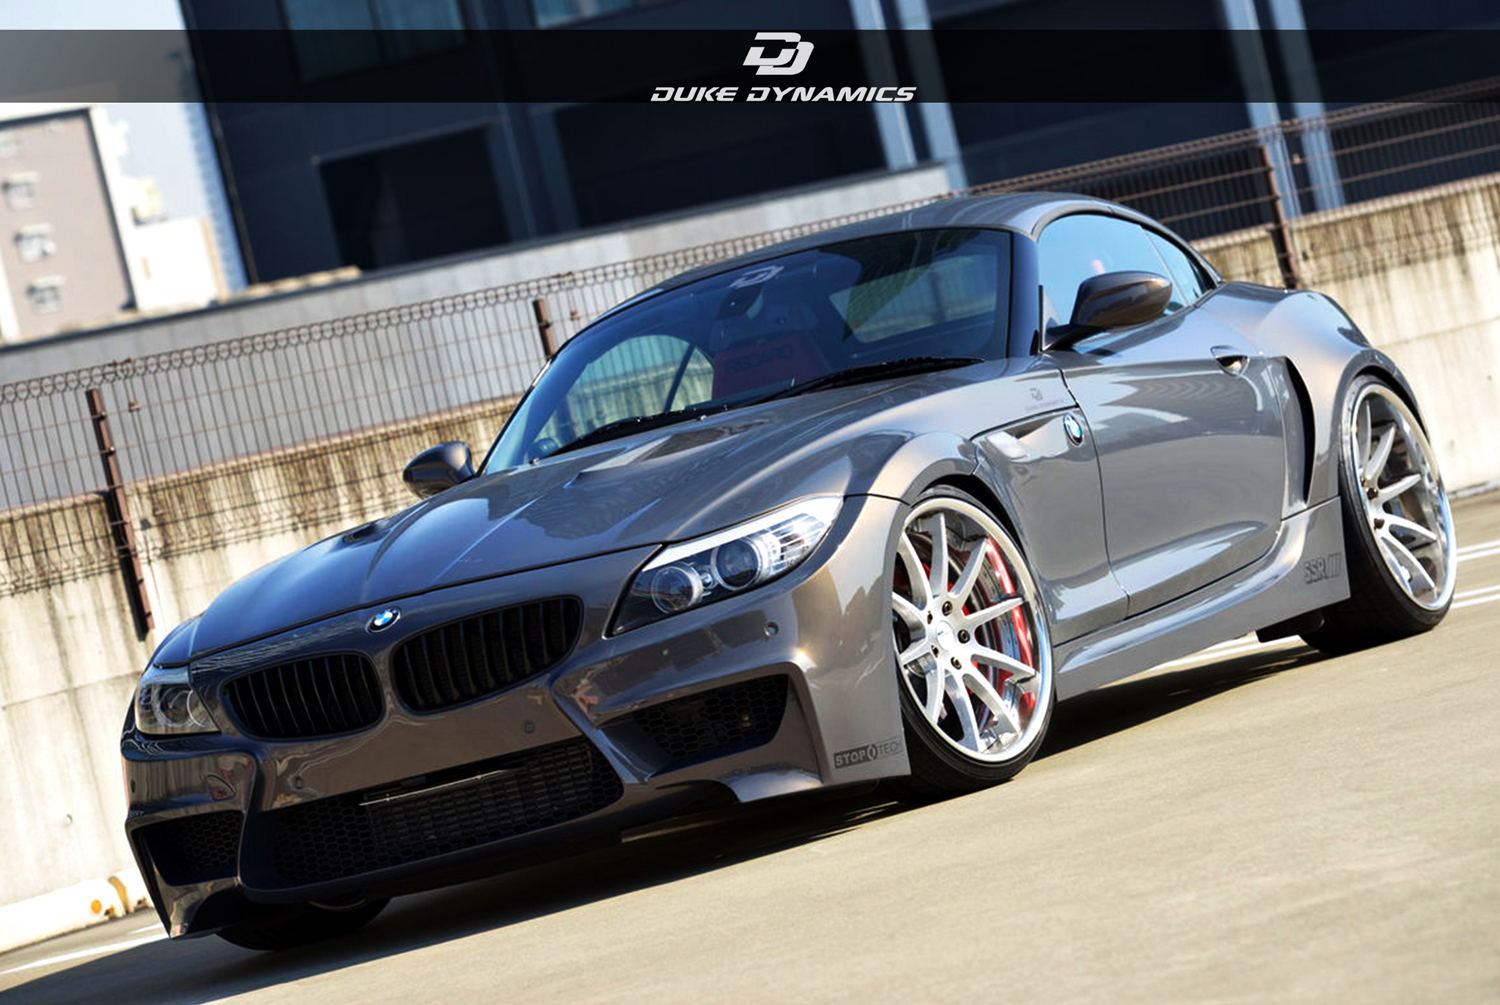 duke dynamics tunes the bmw z4 e89. Black Bedroom Furniture Sets. Home Design Ideas